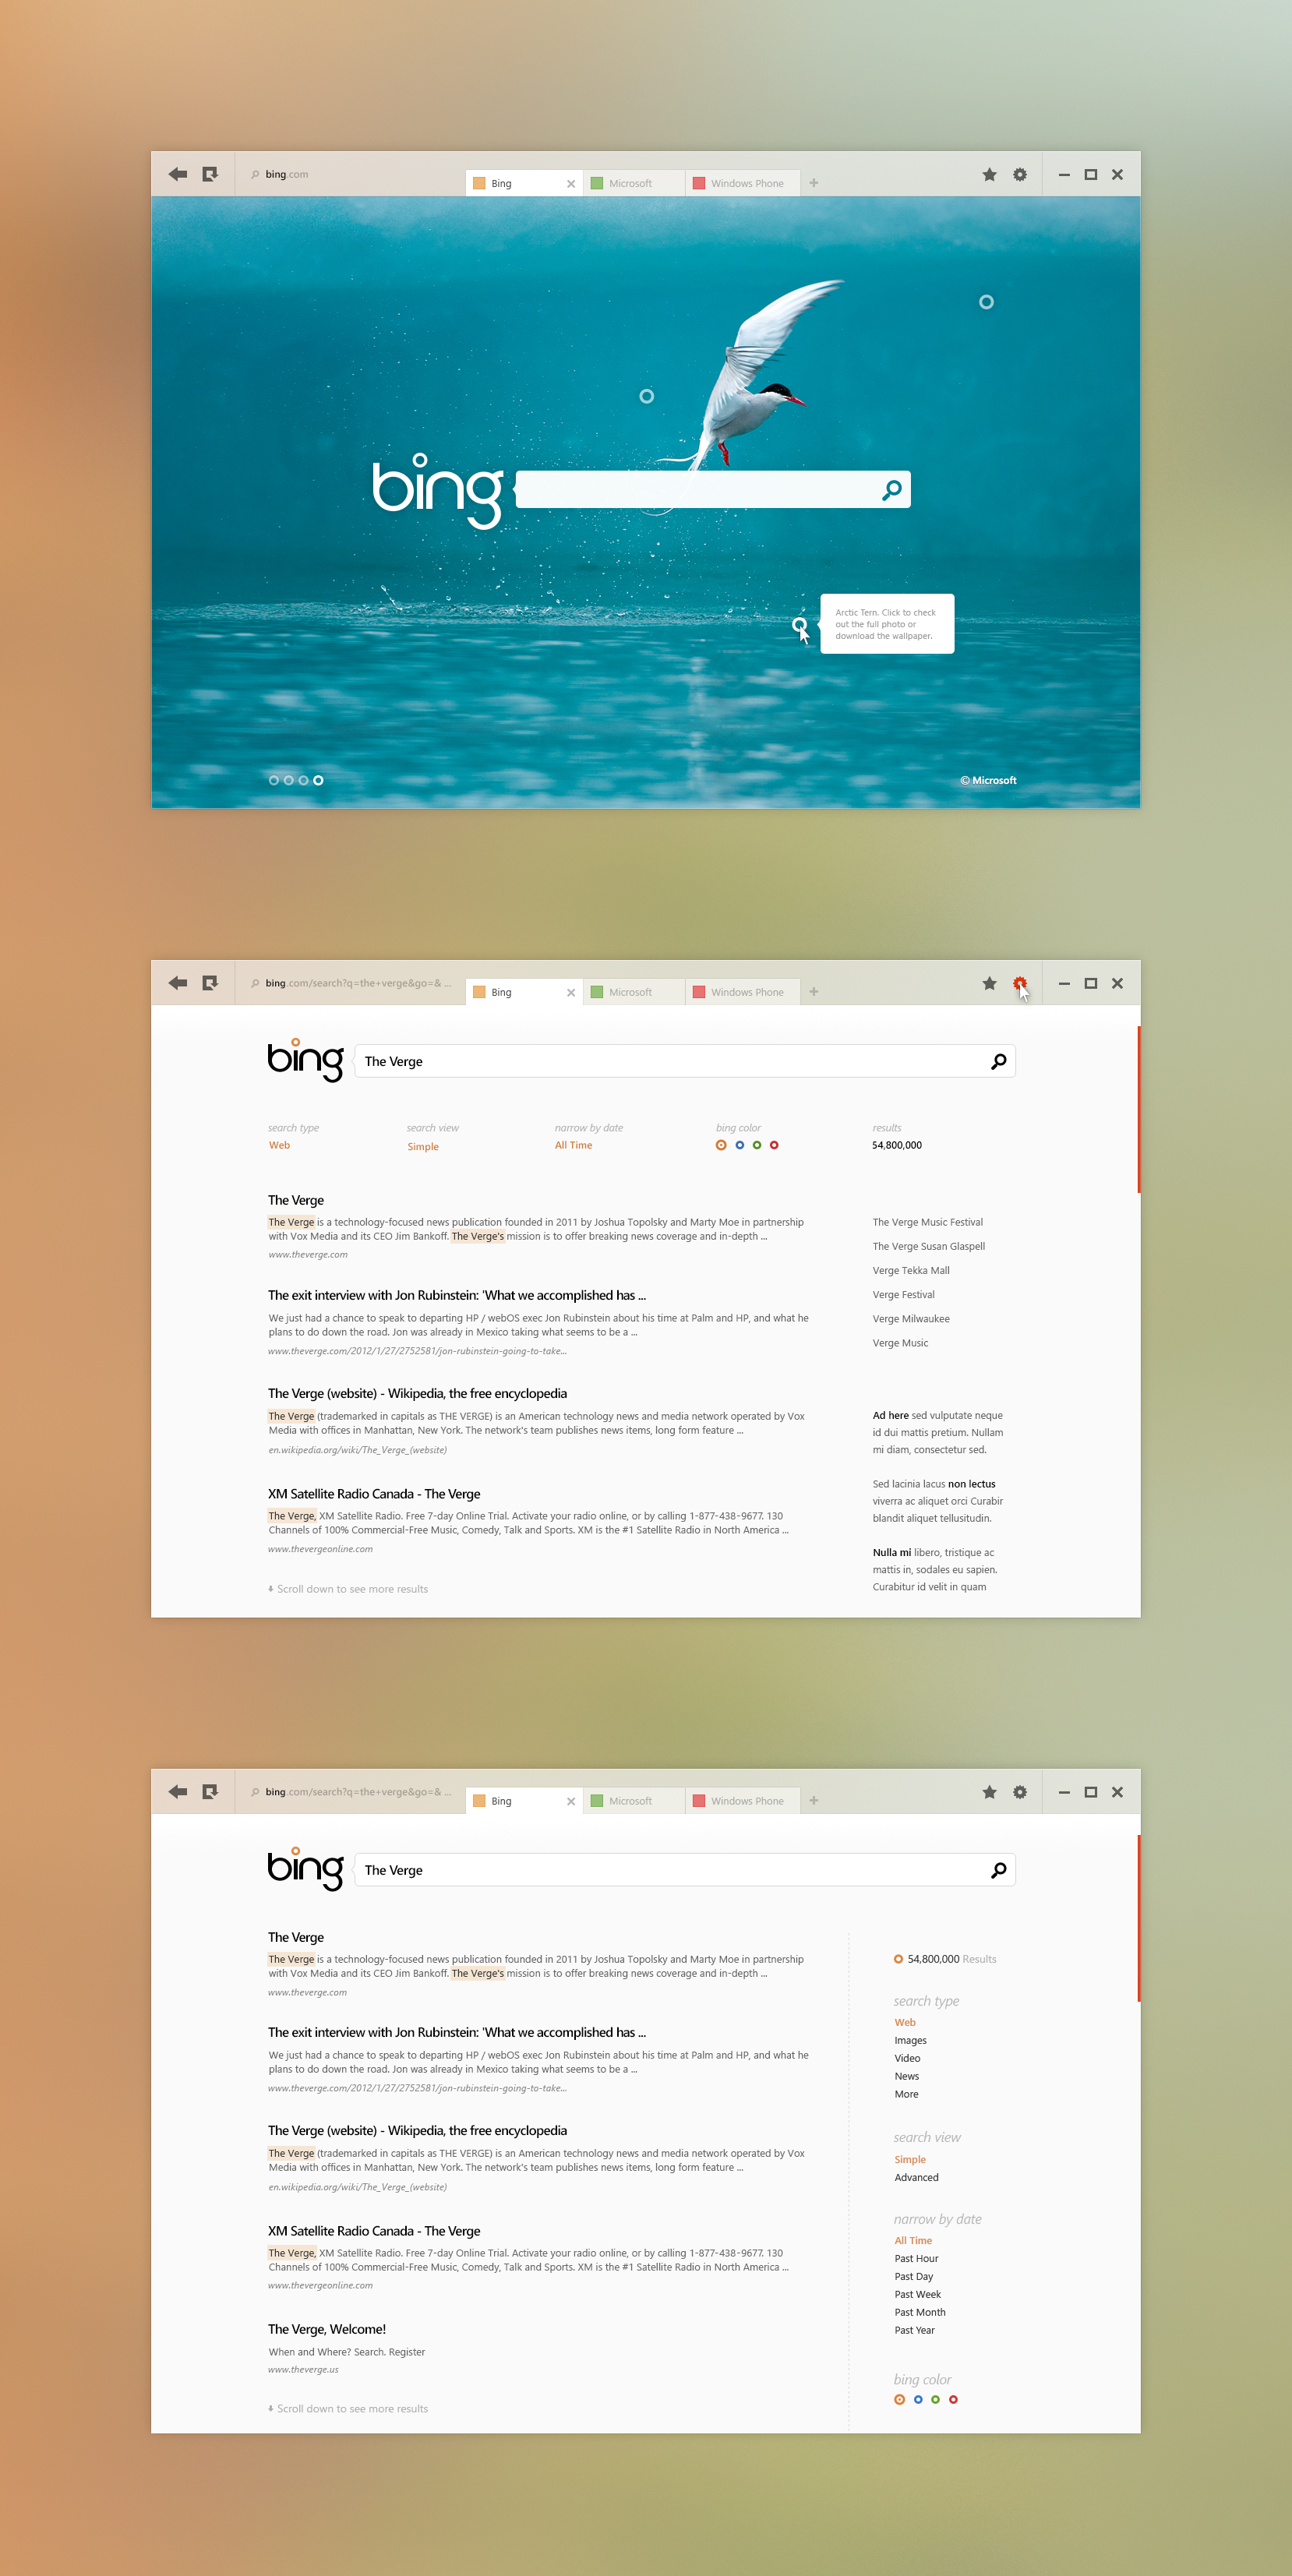 bing_full.png by Phyek